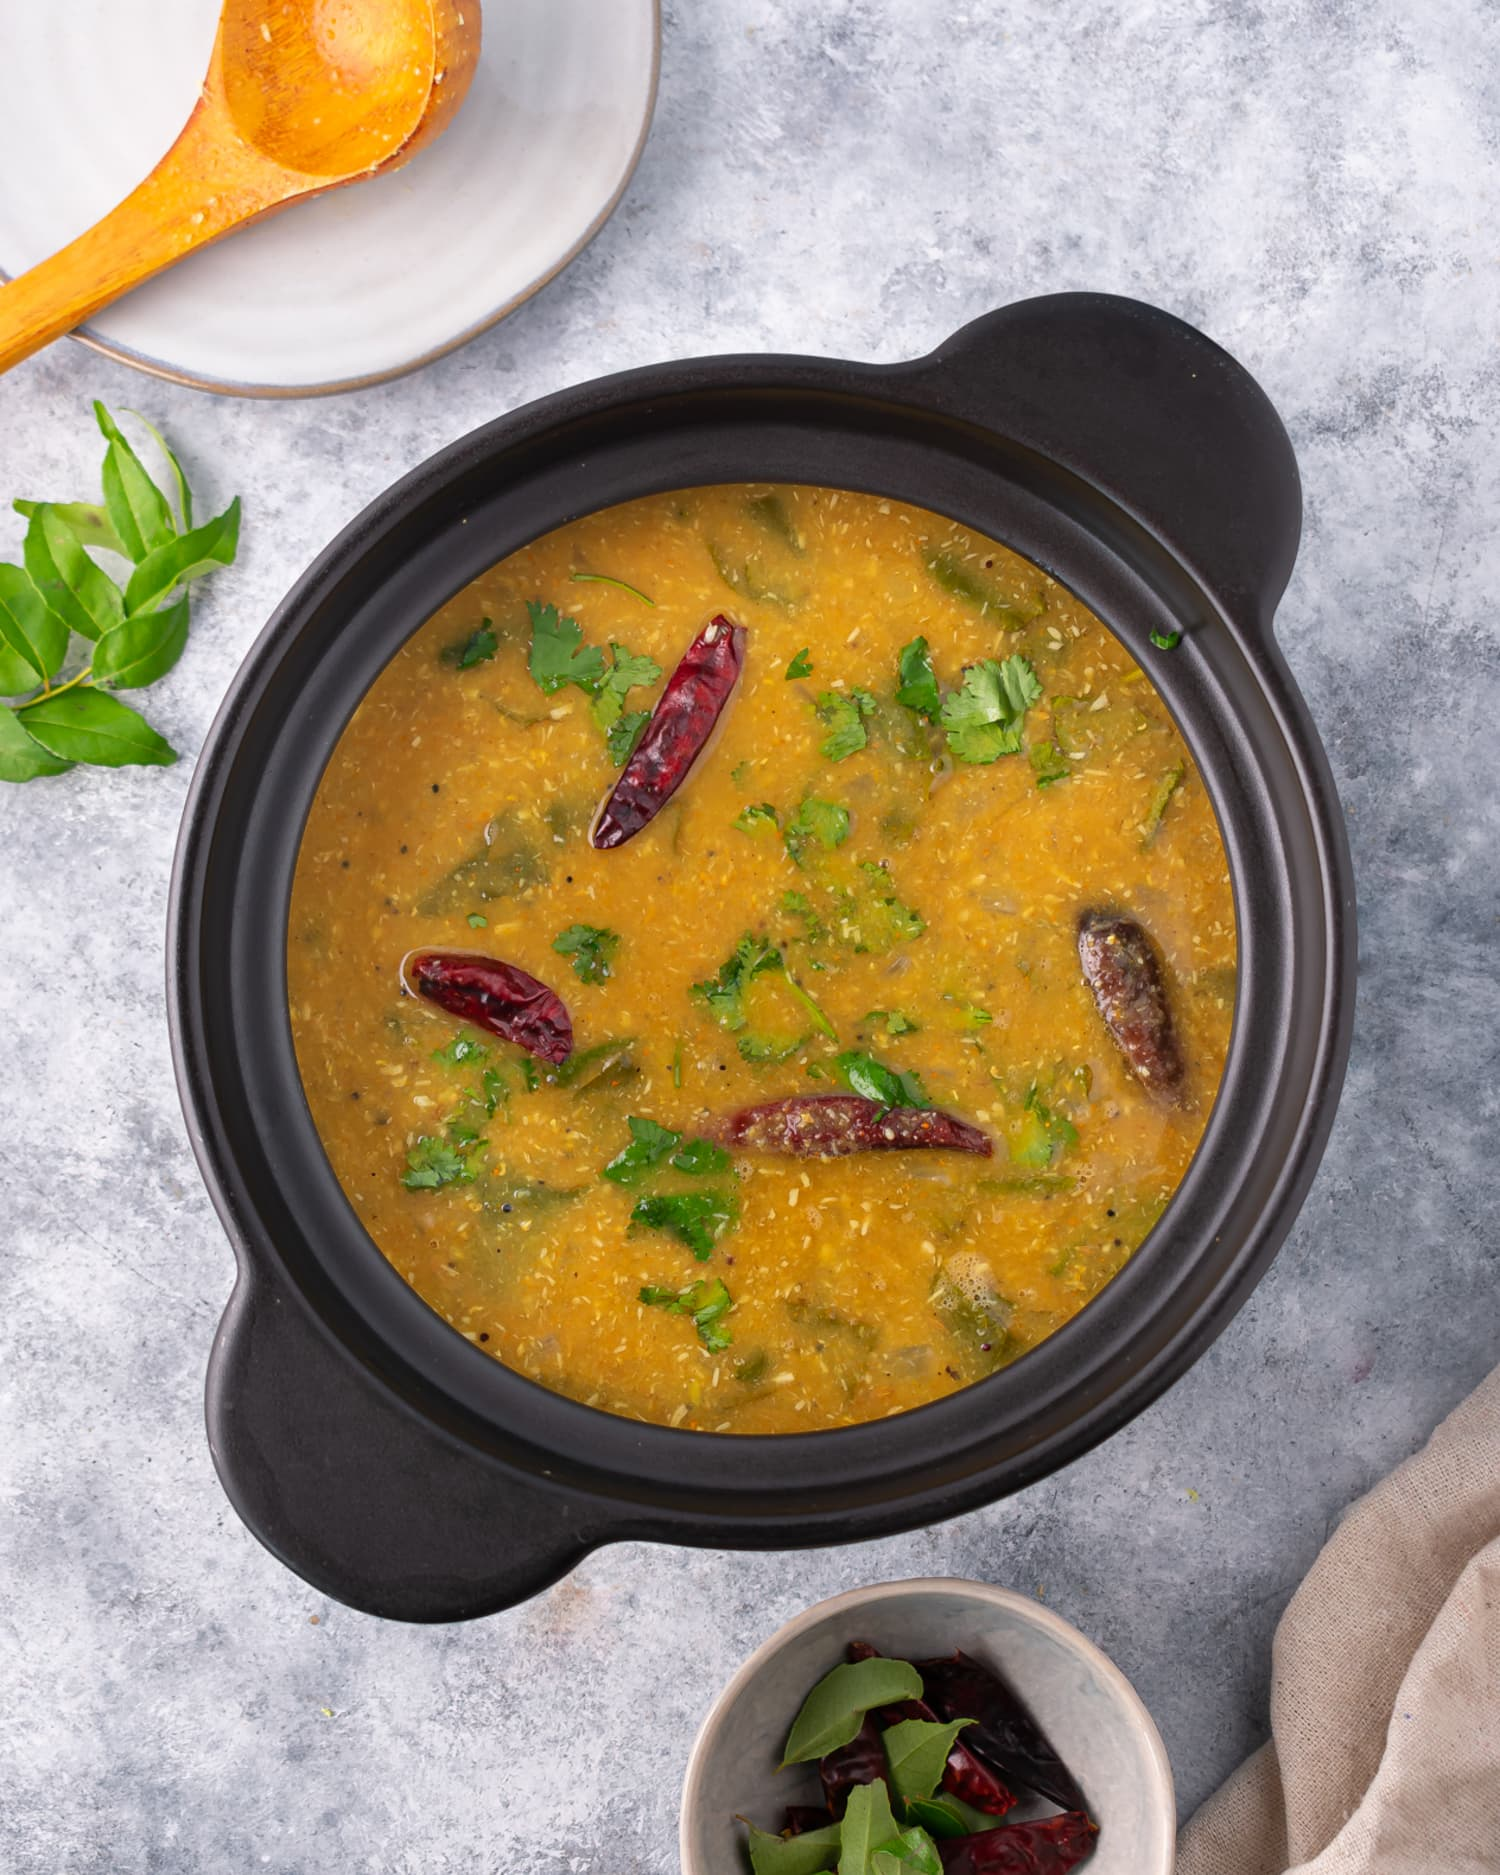 This South Indian Sambar Is Spicy, Tangy, and Veggie-Packed